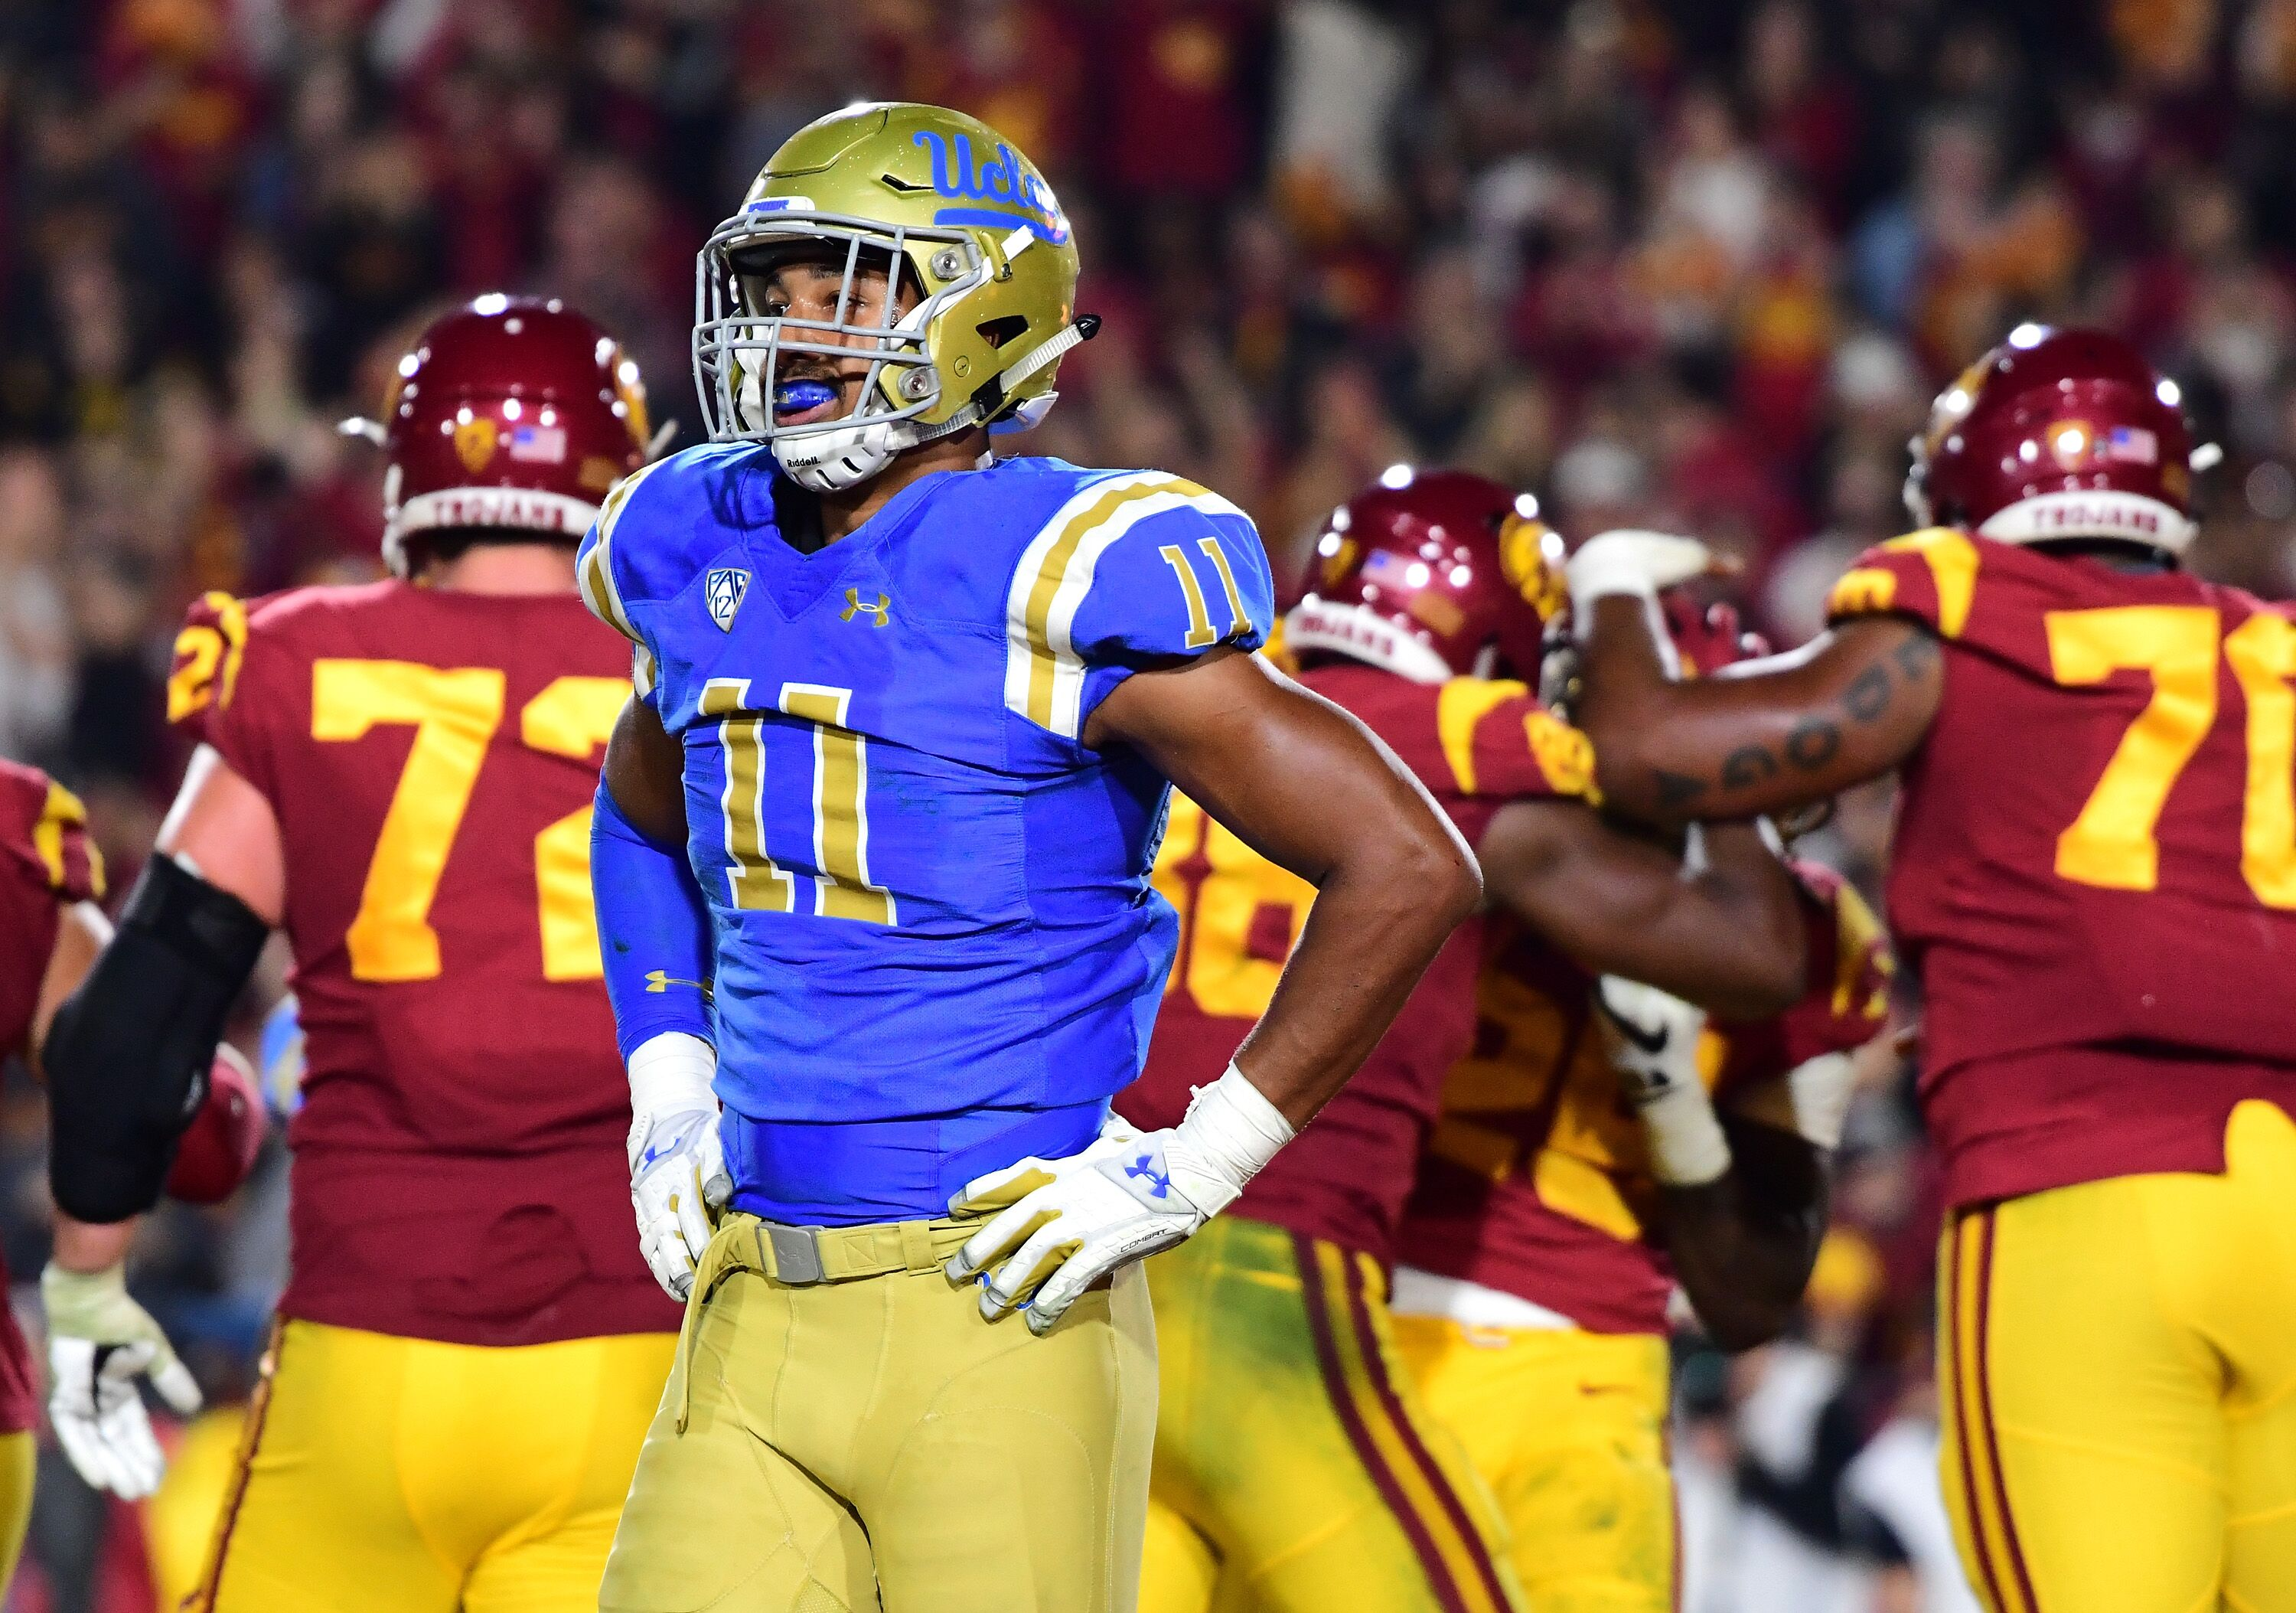 UCLA Football: The defense got worse in 2018, but should improve in 2019